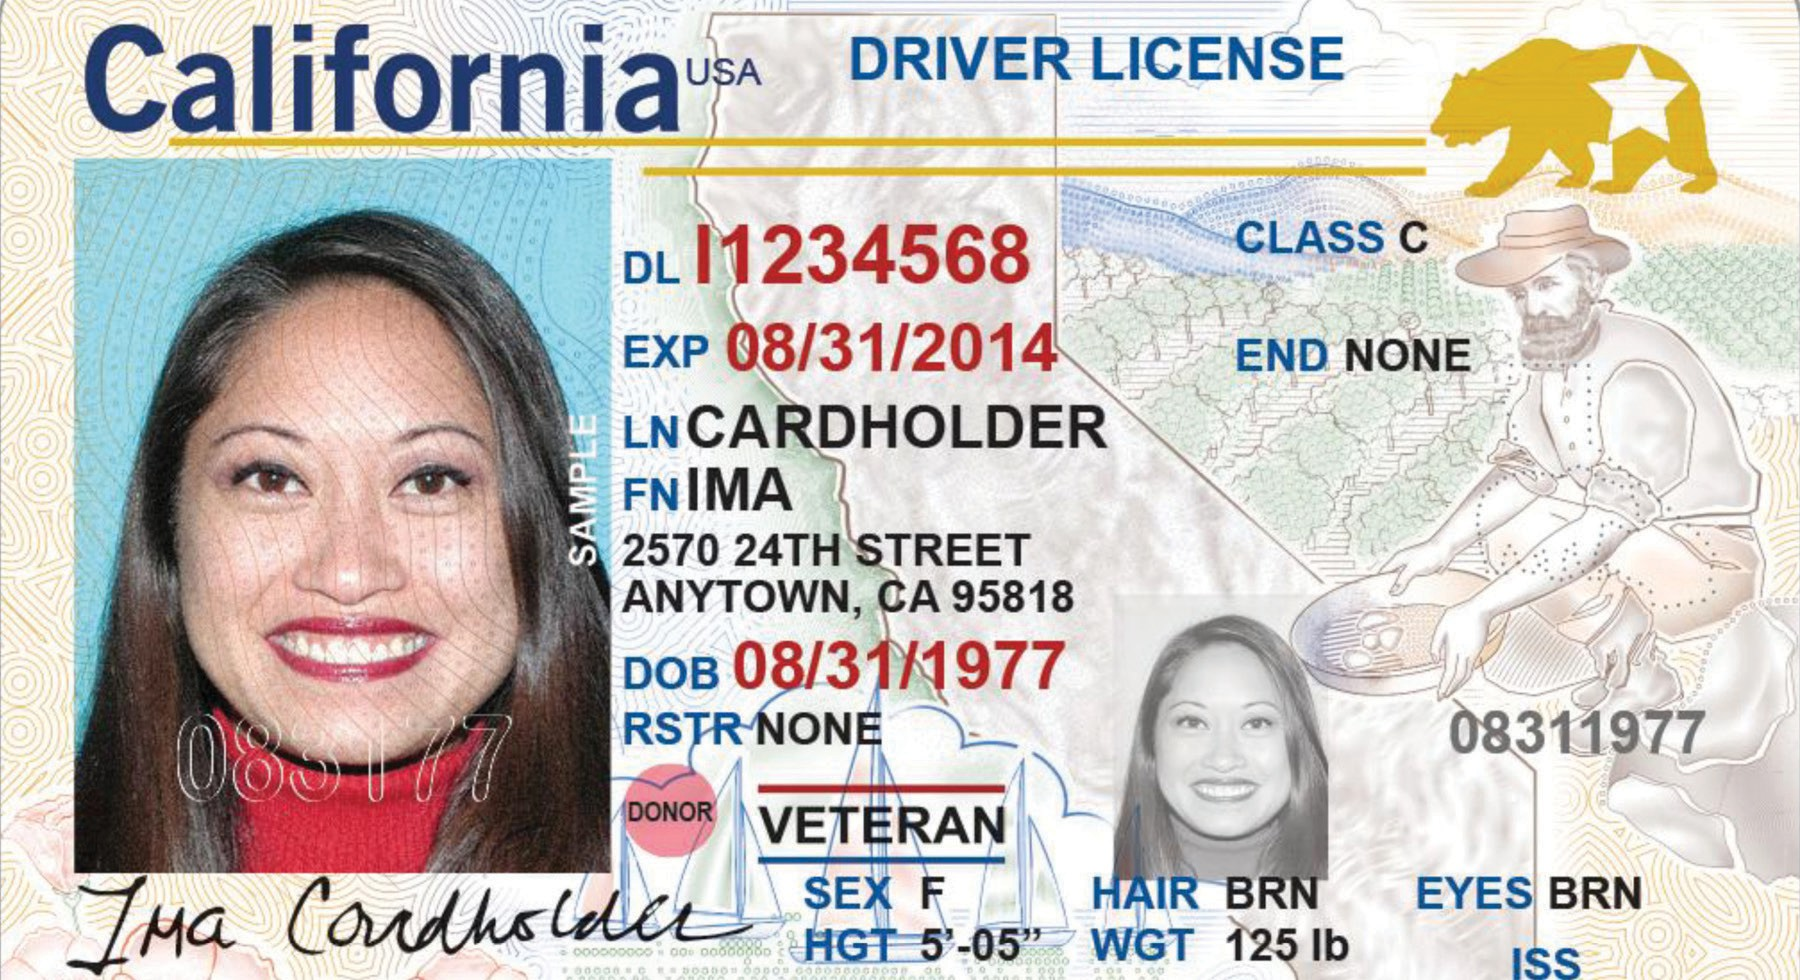 CARDED—The DMV issued this example of what the new federally compliant driver's license looks like.